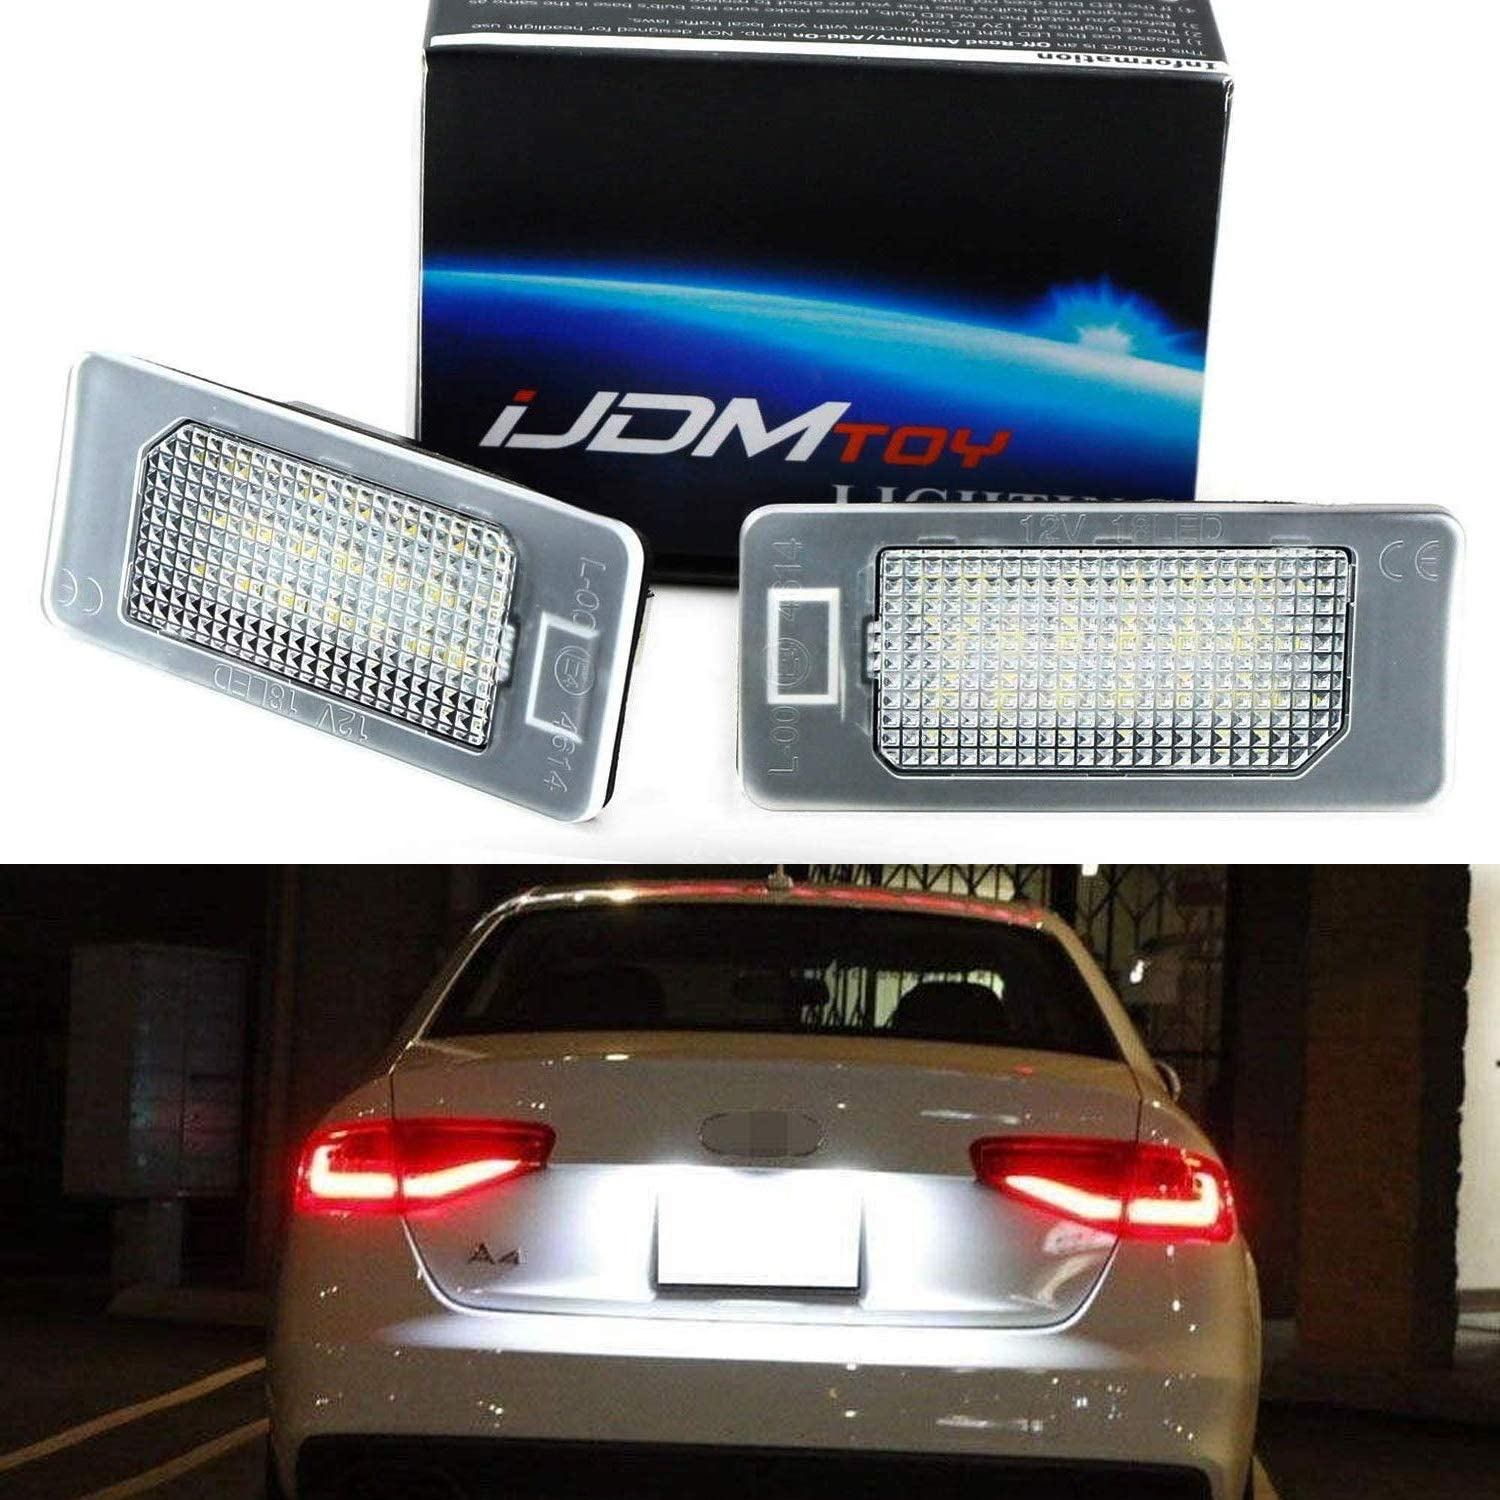 Powered by 24-SMD Xenon White LED /& CAN-bus Error Free iJDMTOY OEM-Fit 3W Full LED License Plate Light Kit Compatible With A4 A5 A6 A7 S4 S5 S6 S7 RS4 RS5 RS7 Q5 Q7